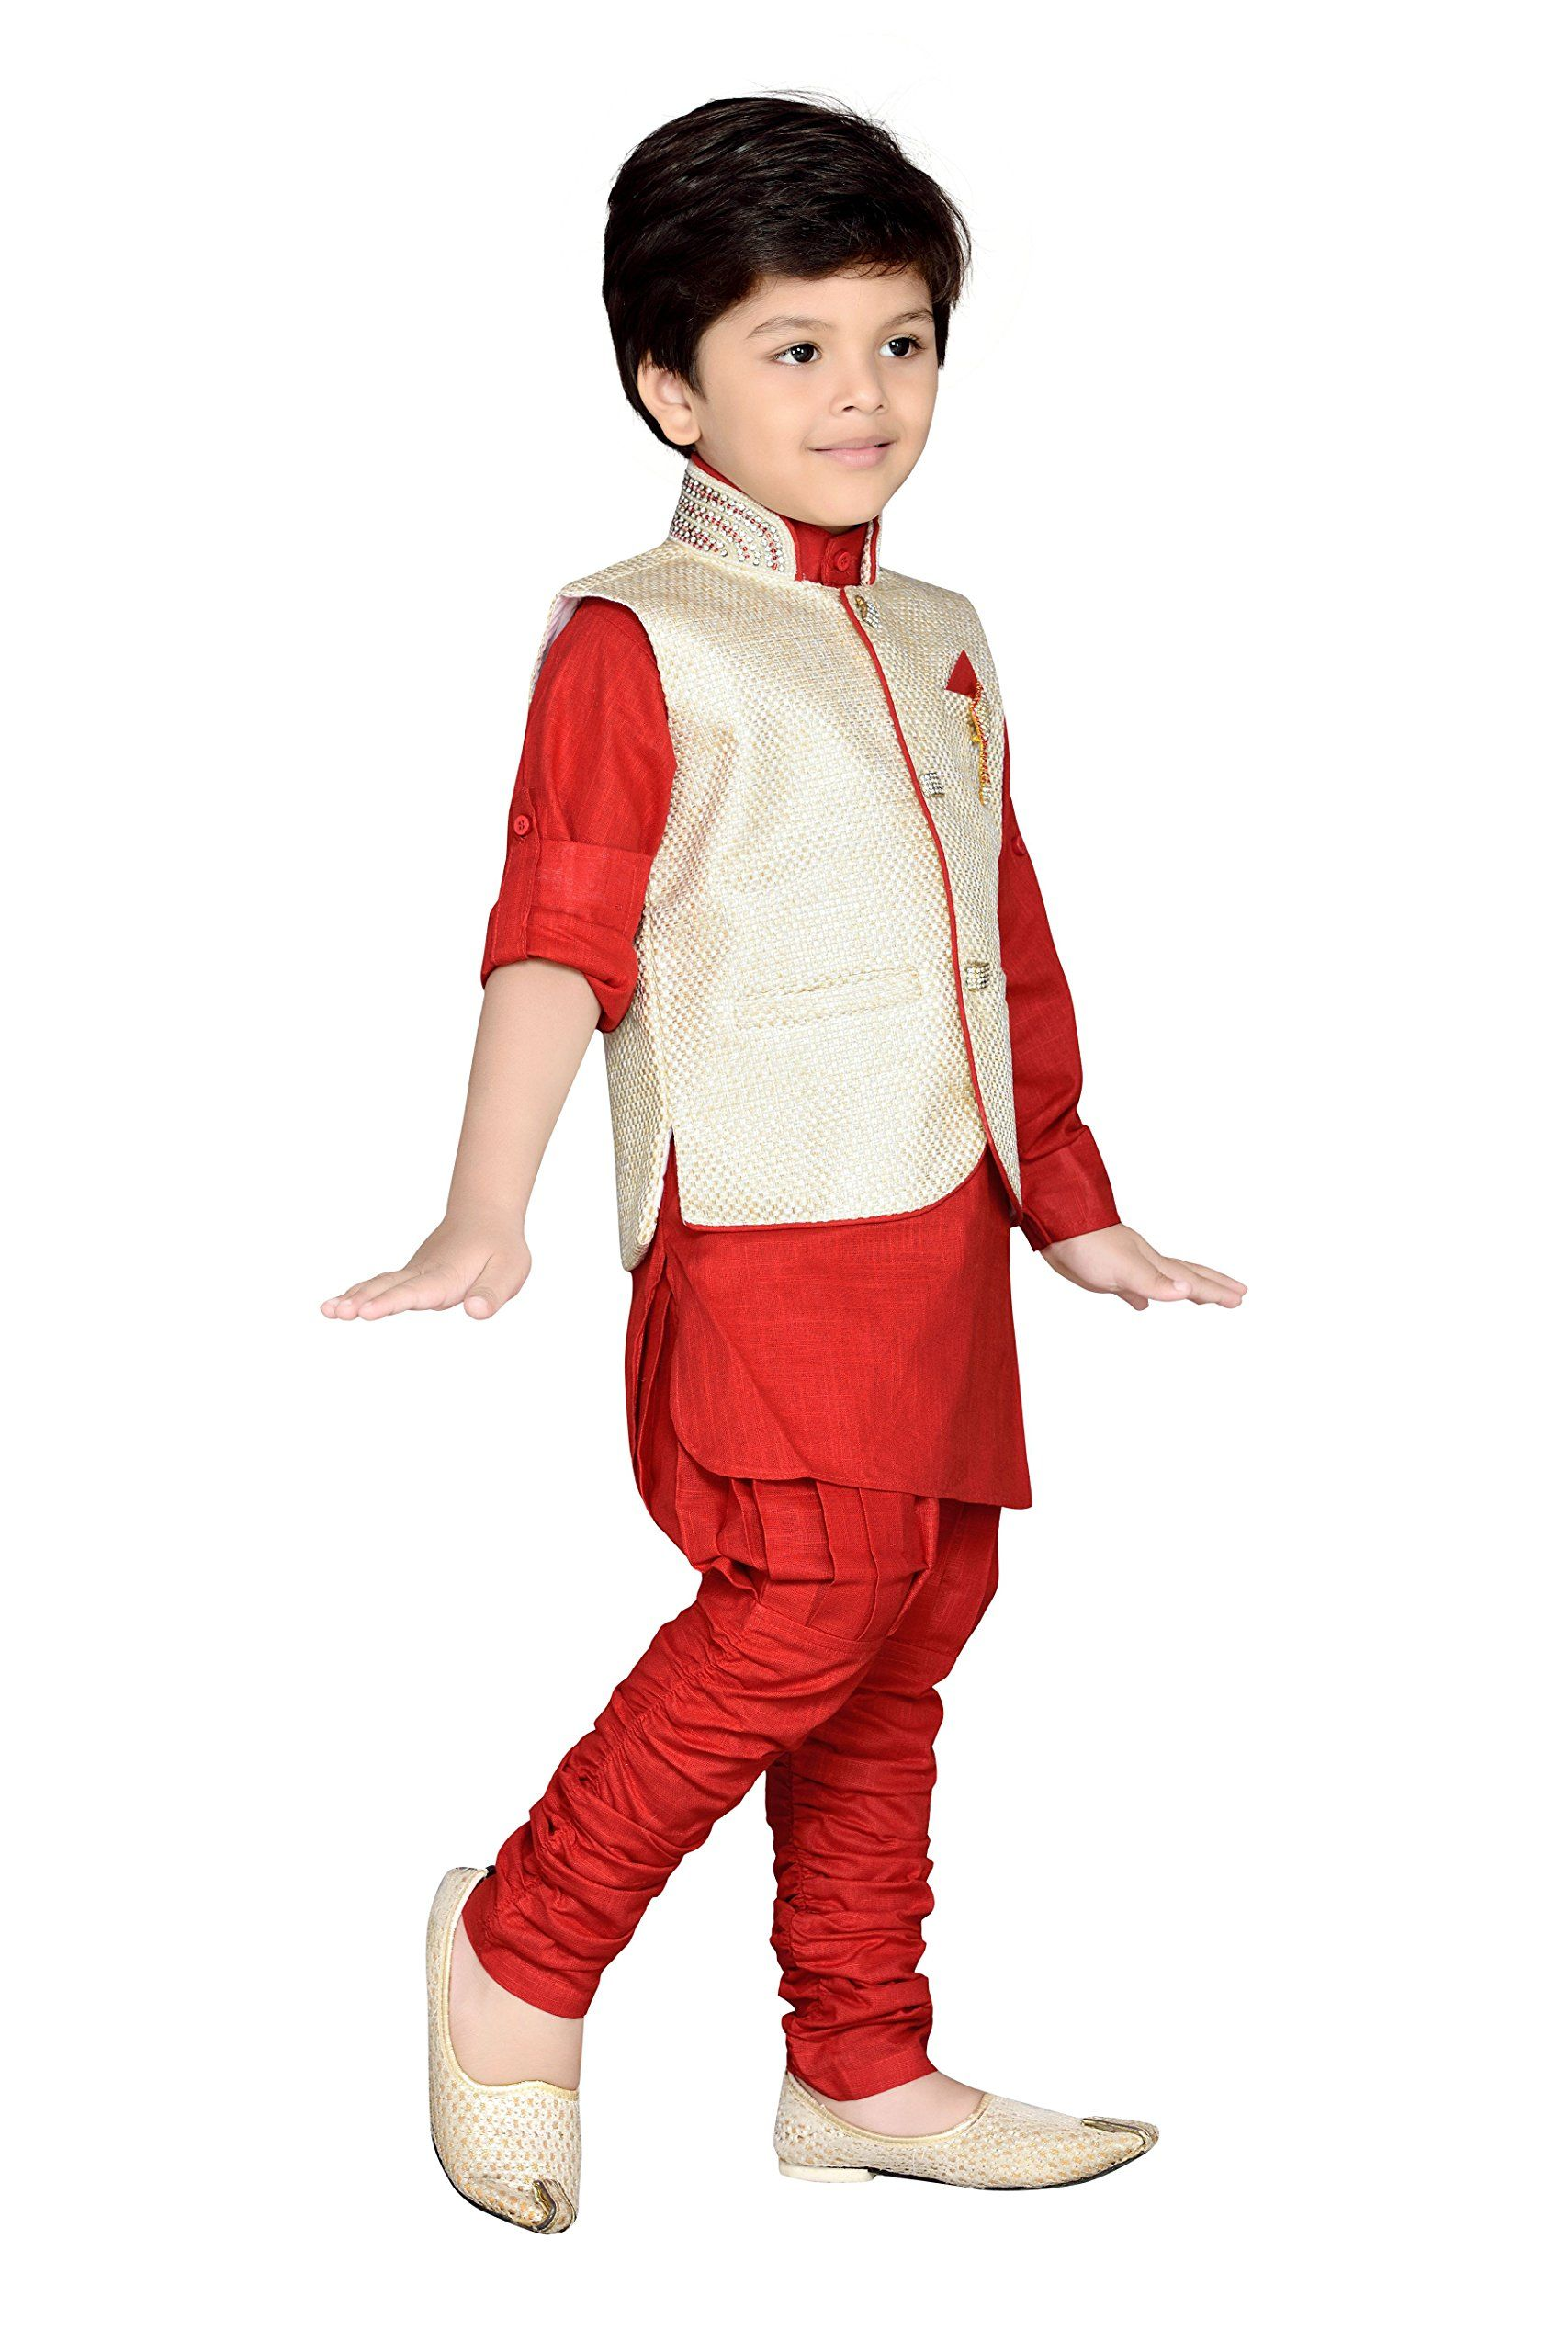 af4ee54468 AJ Dezines Kids Indian Wear Bollywood Style Kurta Pyjama Waistcoat for Baby  Boys 637RED0 >>> Click photo for even more details. (This is an affiliate  link).